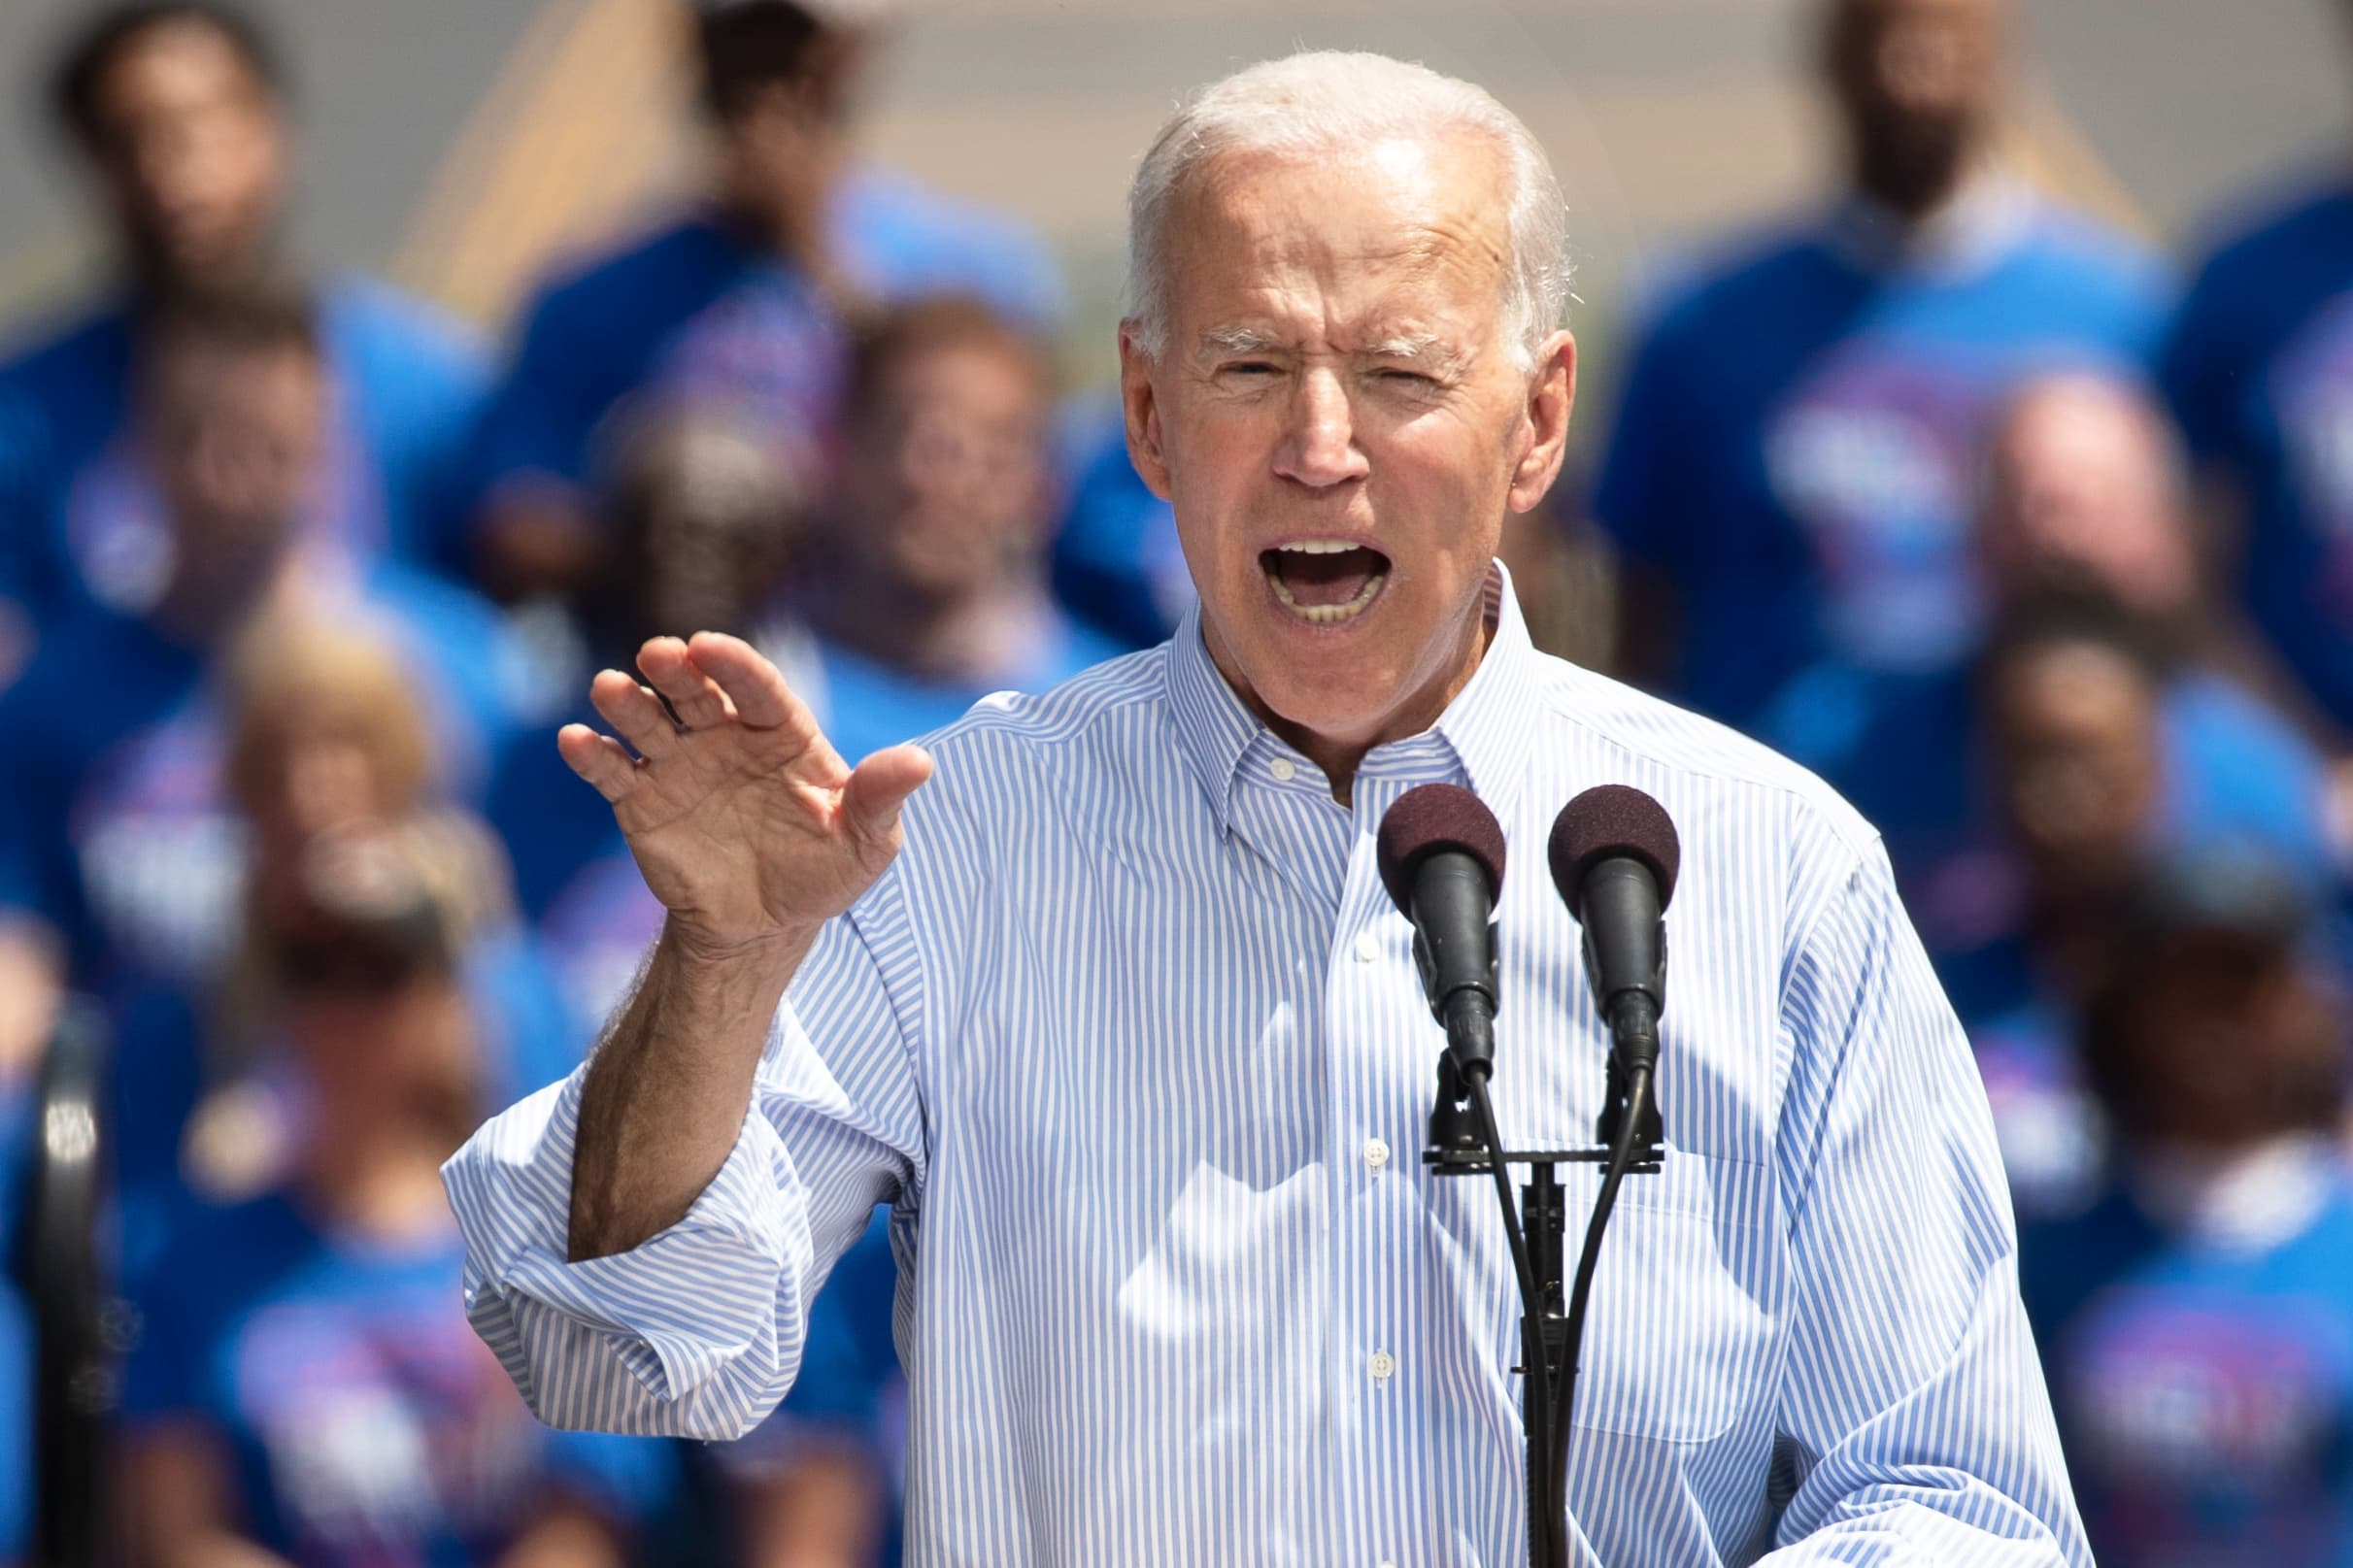 Joe Biden's Twitter fight with Amazon perfectly sums up the battle over America's new tax code